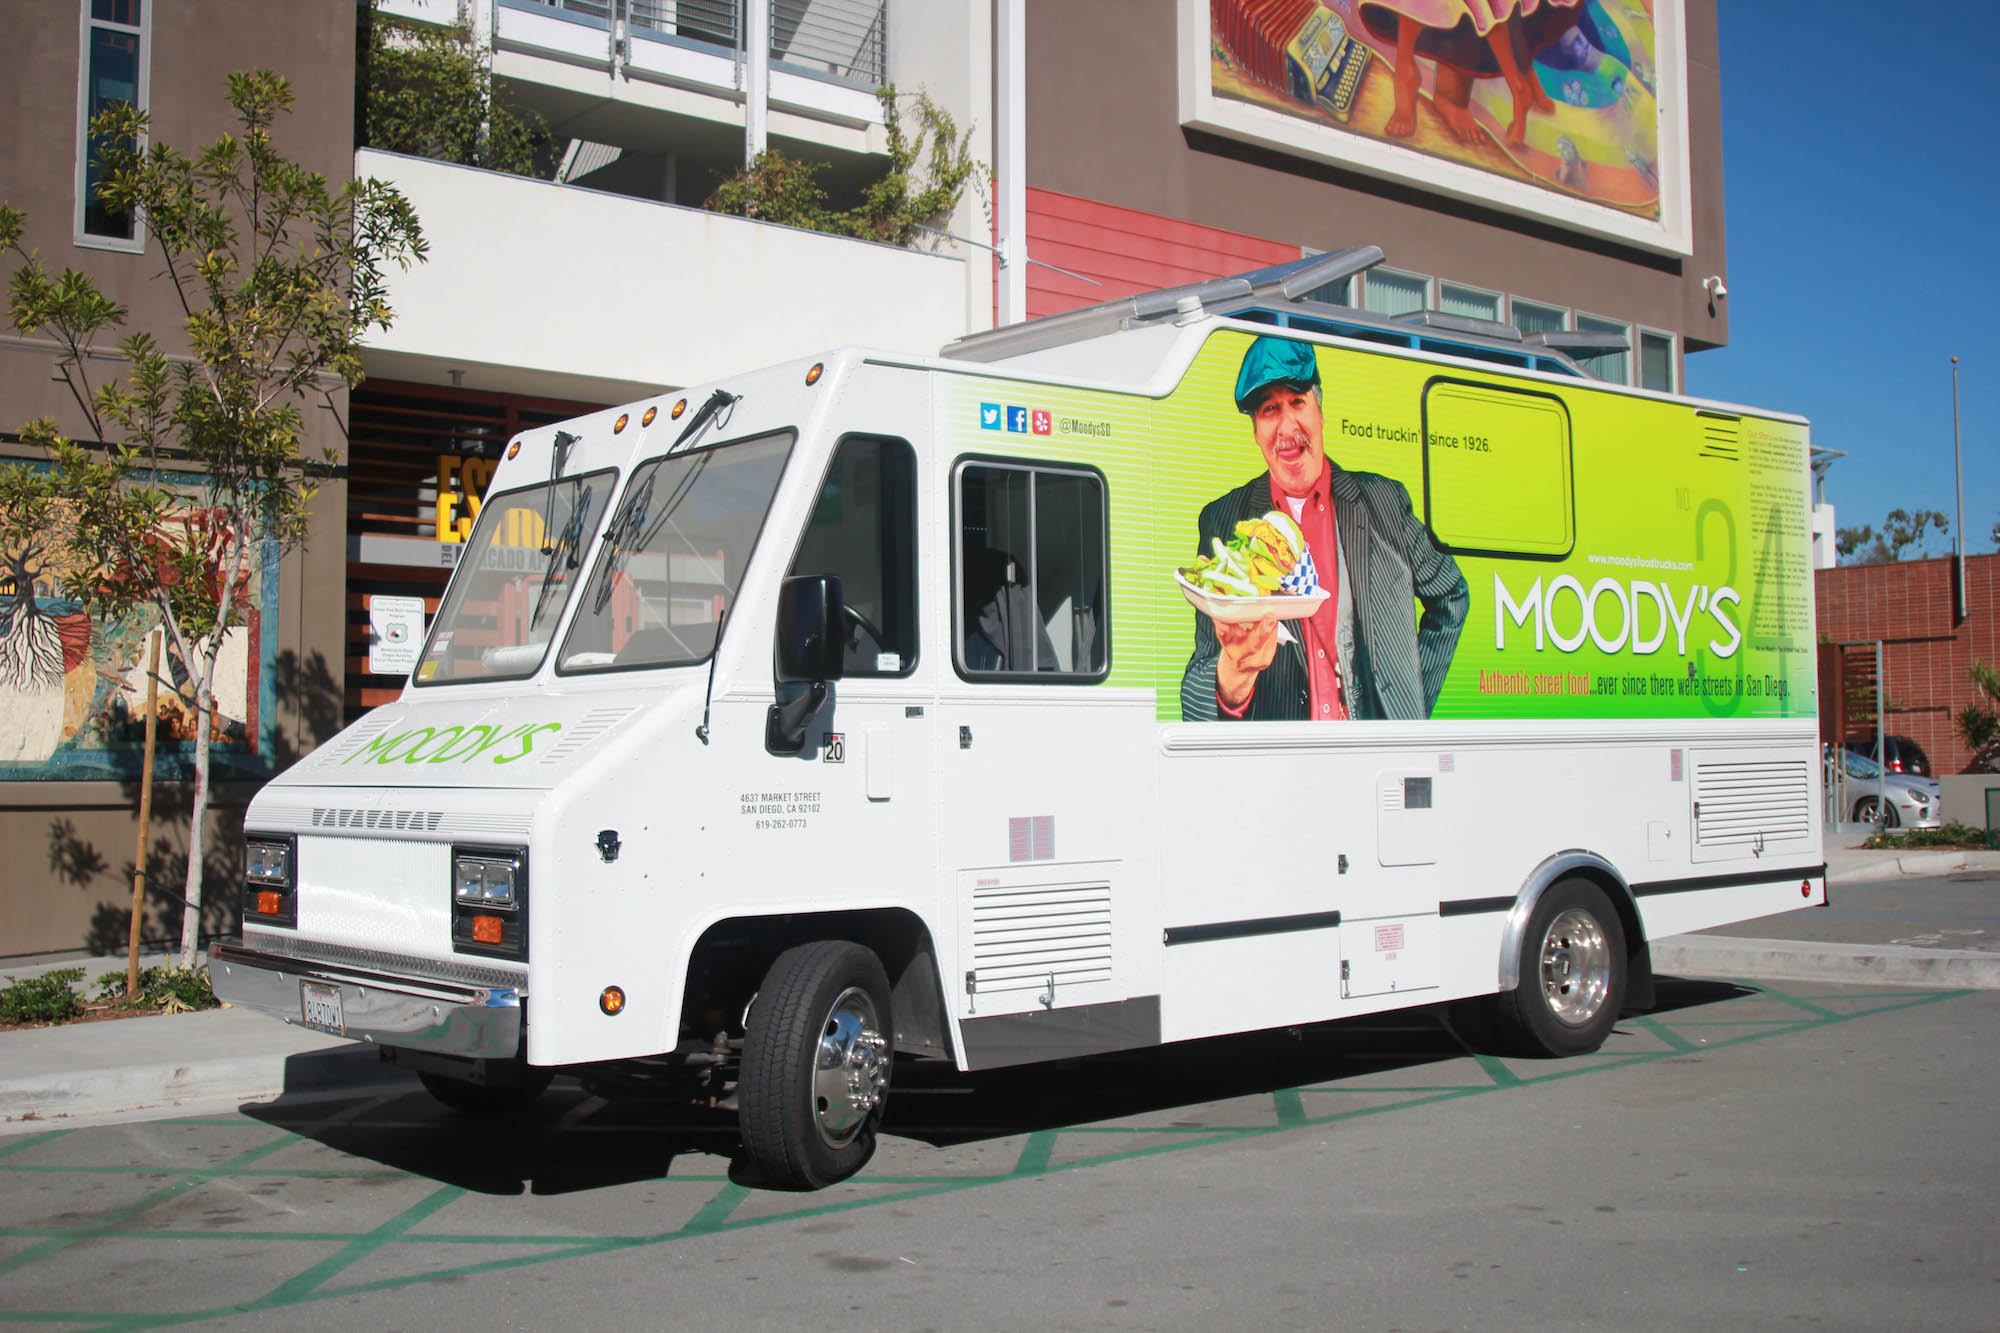 moodys-food-truck-1